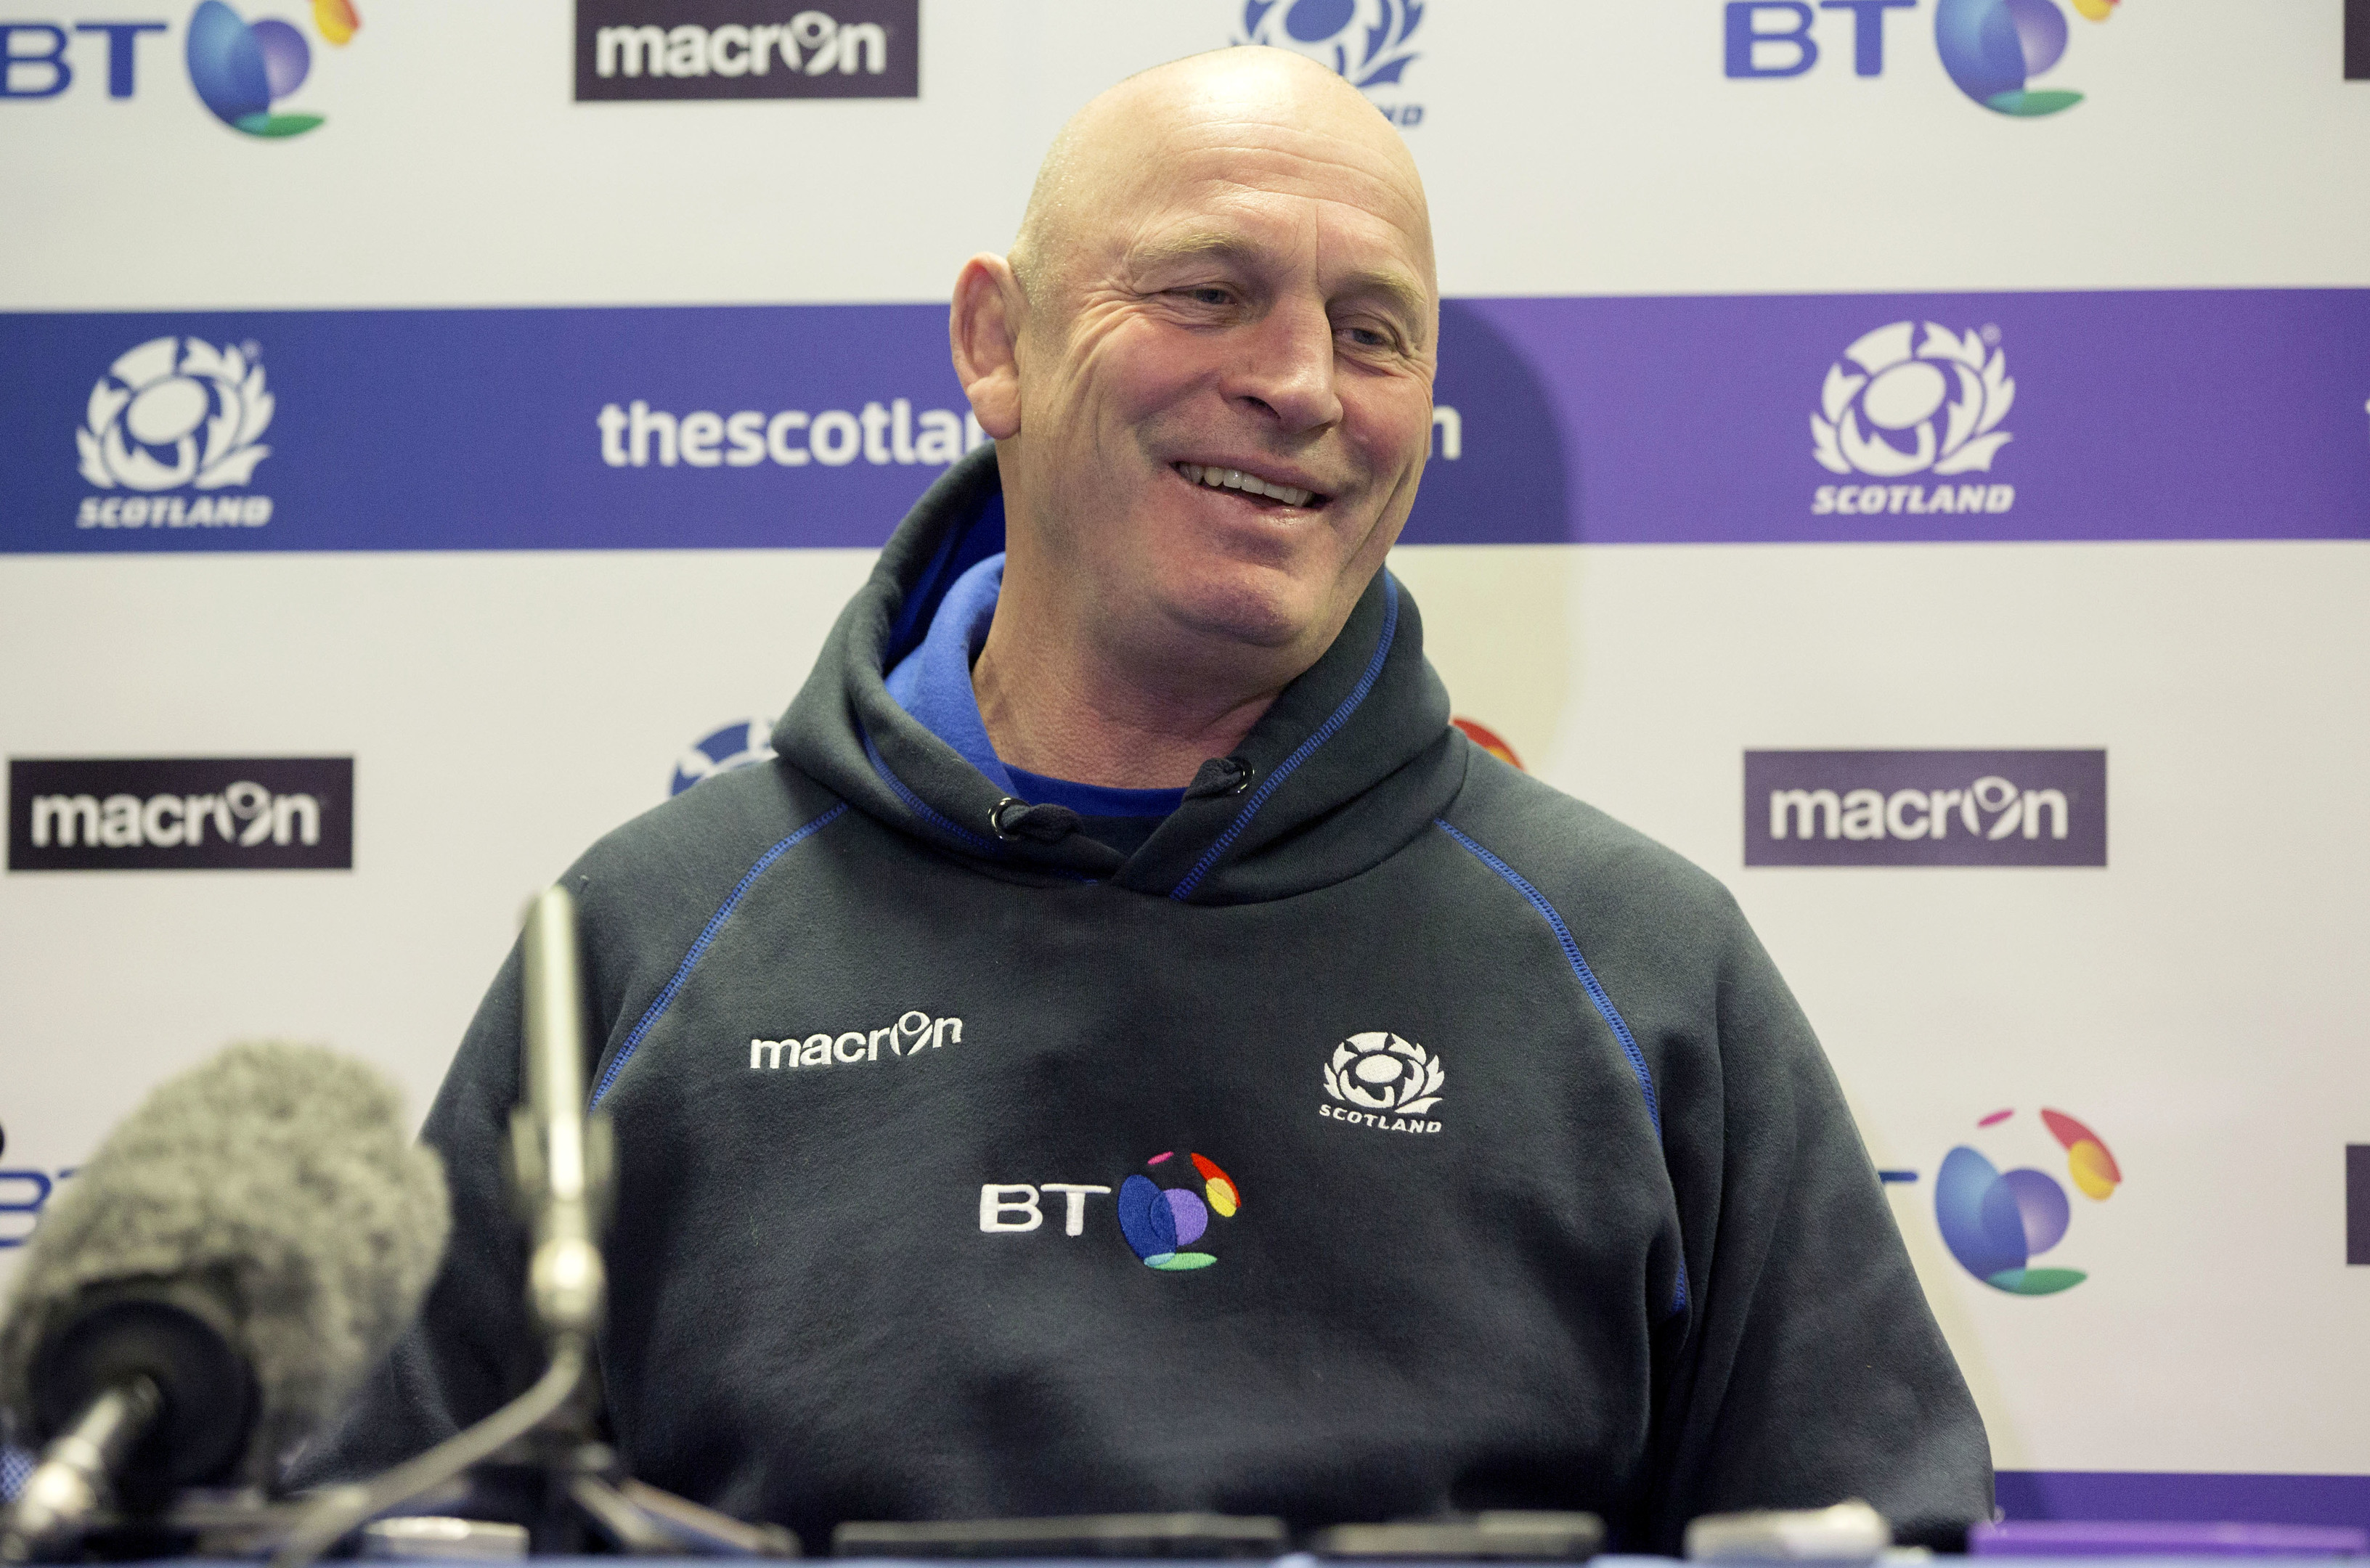 Vern Cotter has a big decision to make. What do you think he should do?.